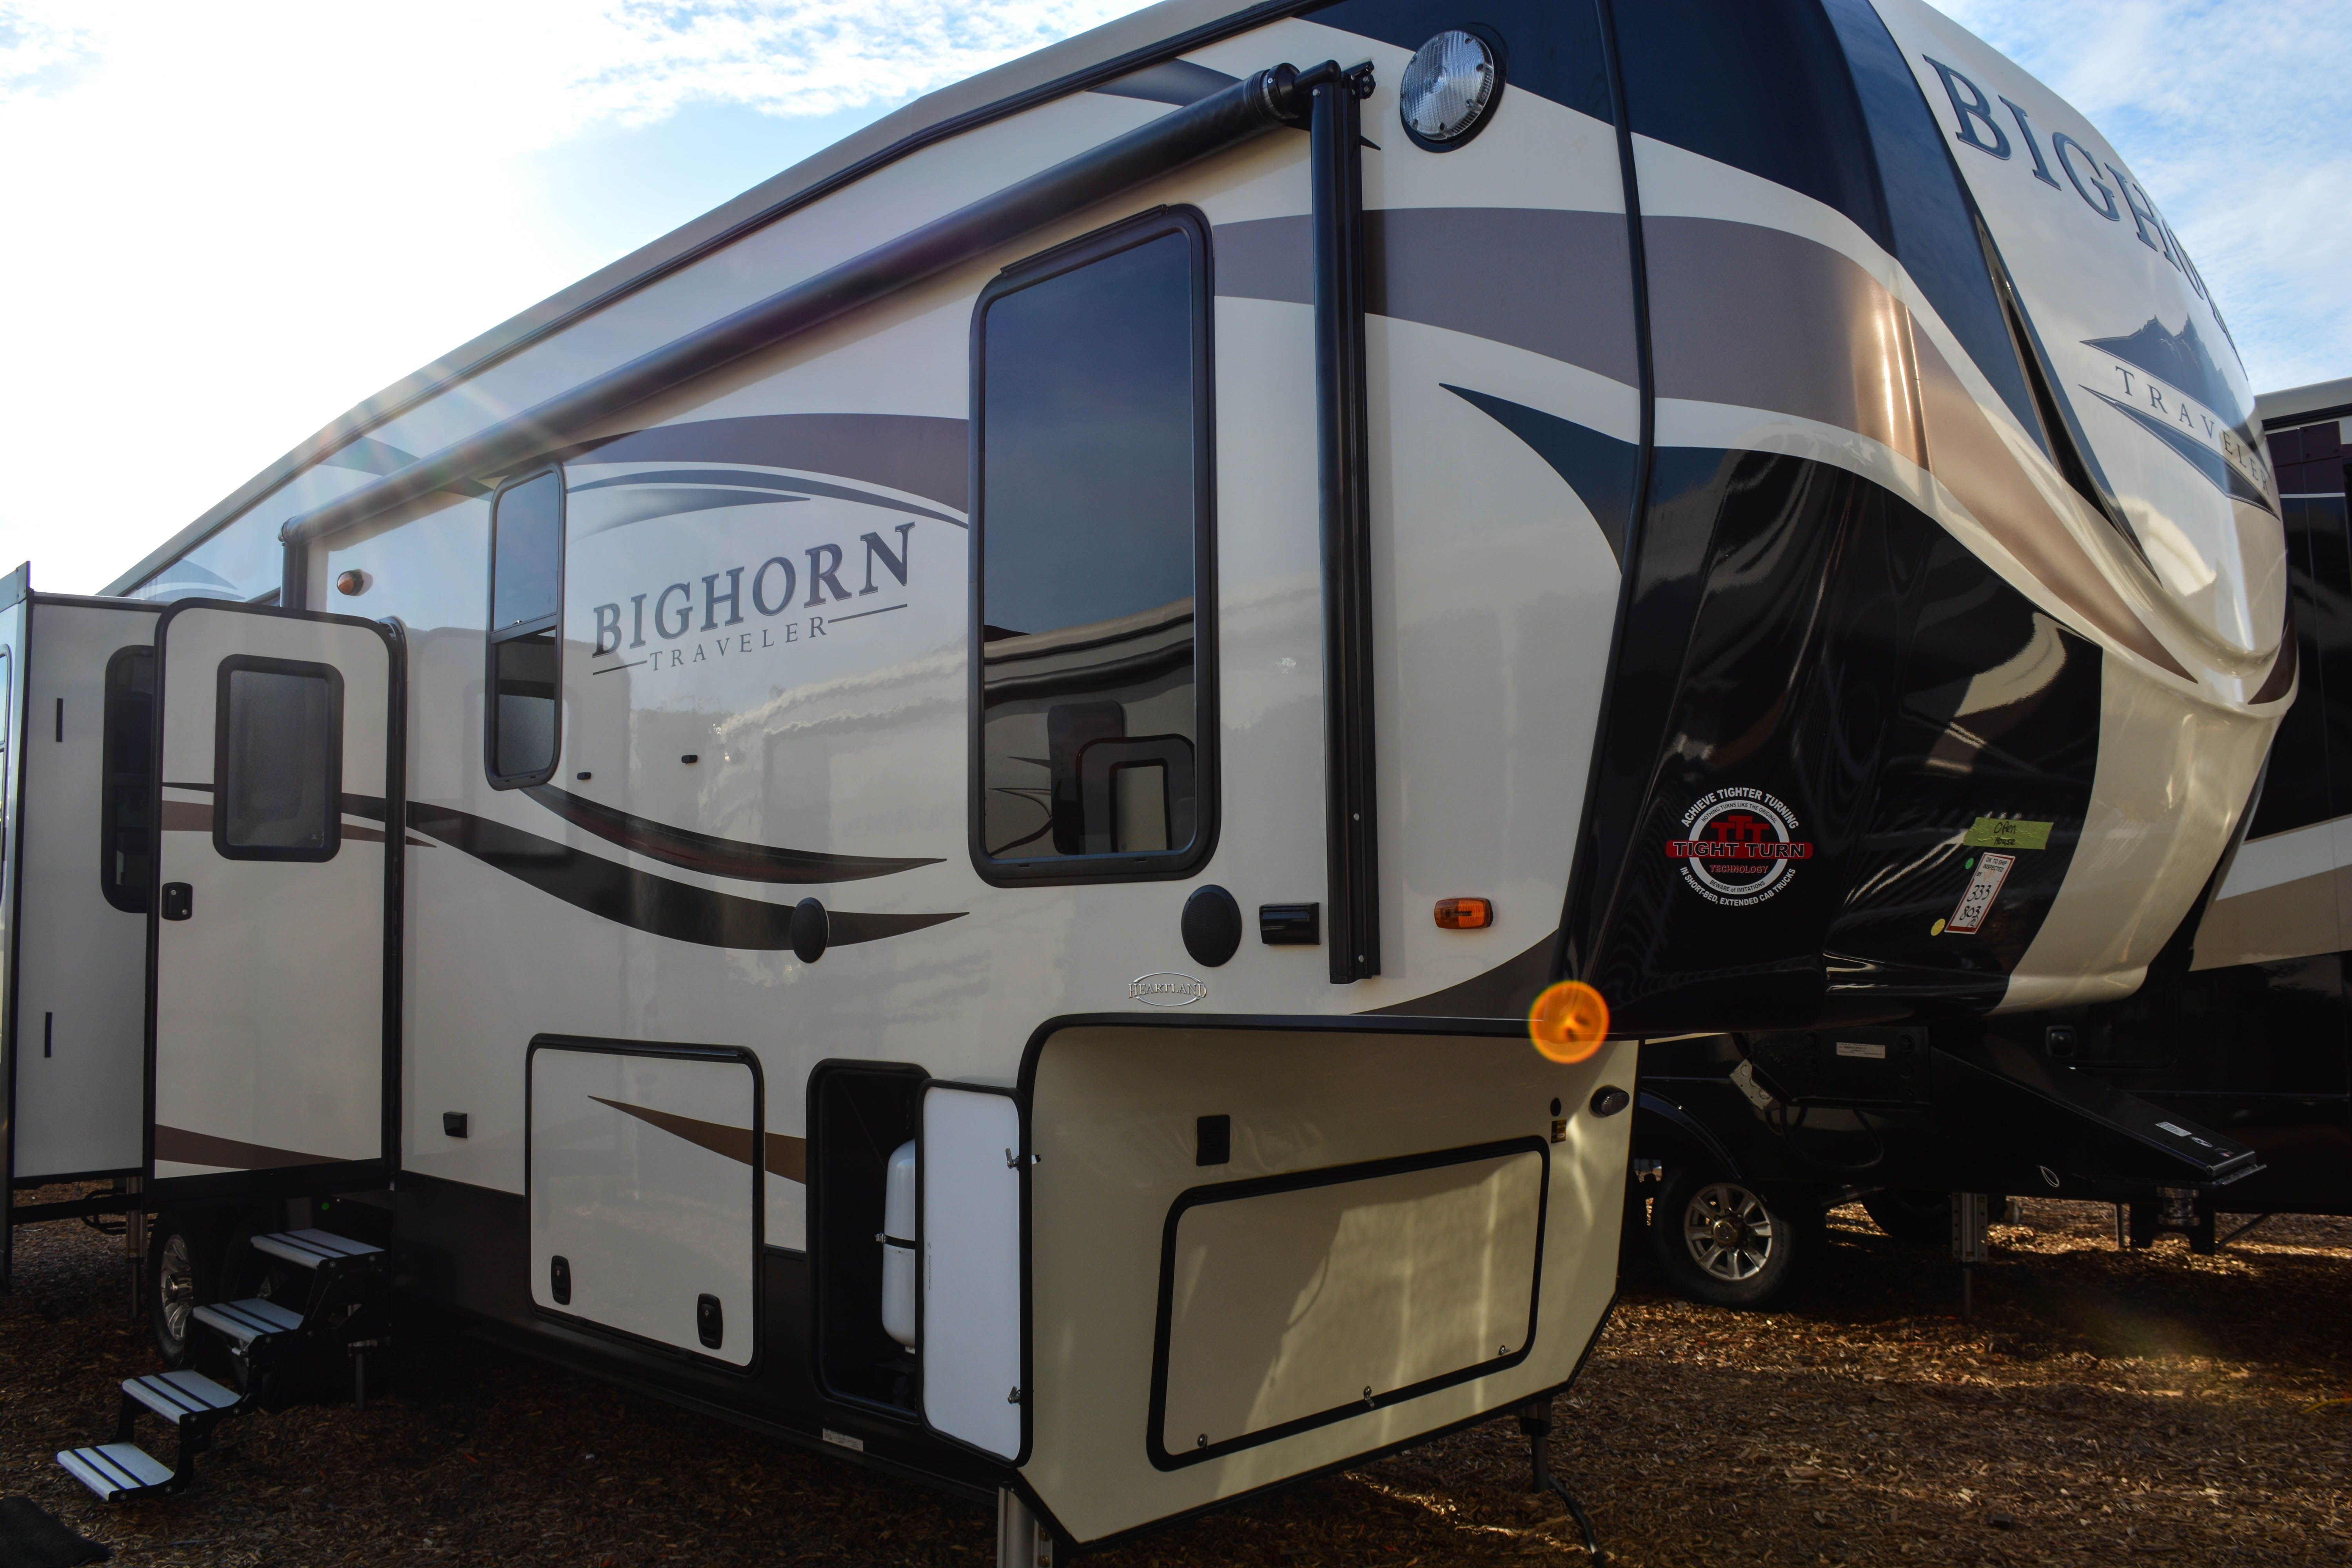 Discover Scenic Rv Destinations In The Bighorn Traveler Popular Options Include 12 Cu Ft Gas Electr Toy Hauler Travel Trailer Rv Destination Travel Trailer